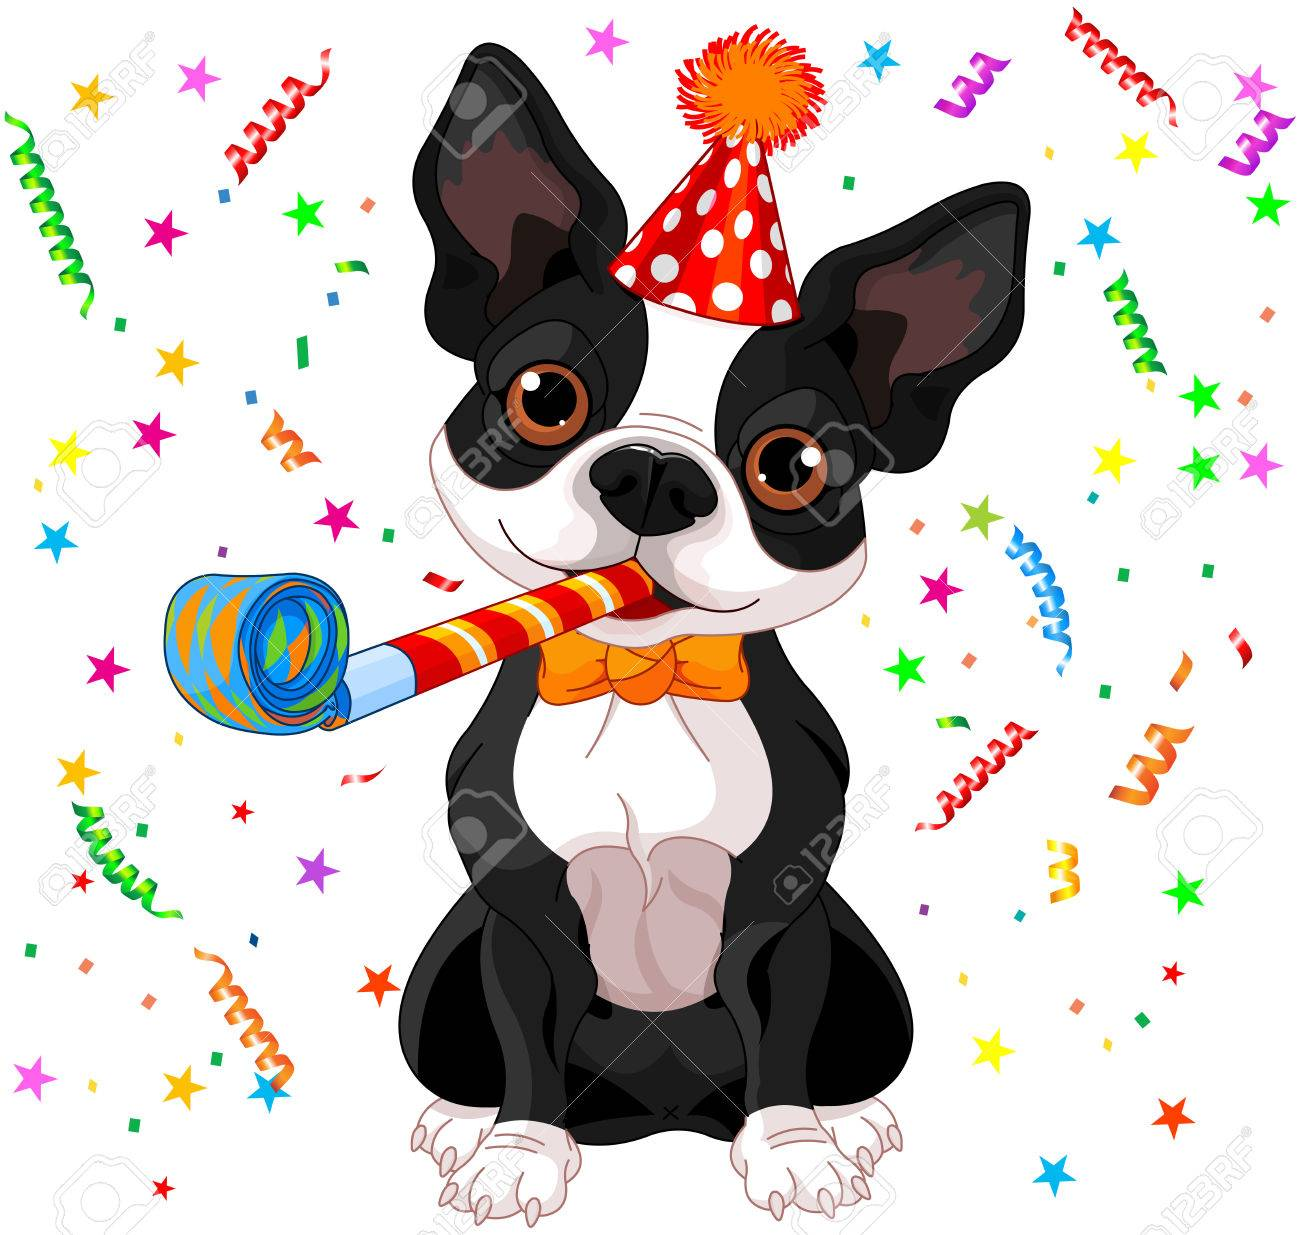 Gestion de l'émotion: prendre un objet en gueule 35588778-illustration-of-cute-boston-terrier-celebrating